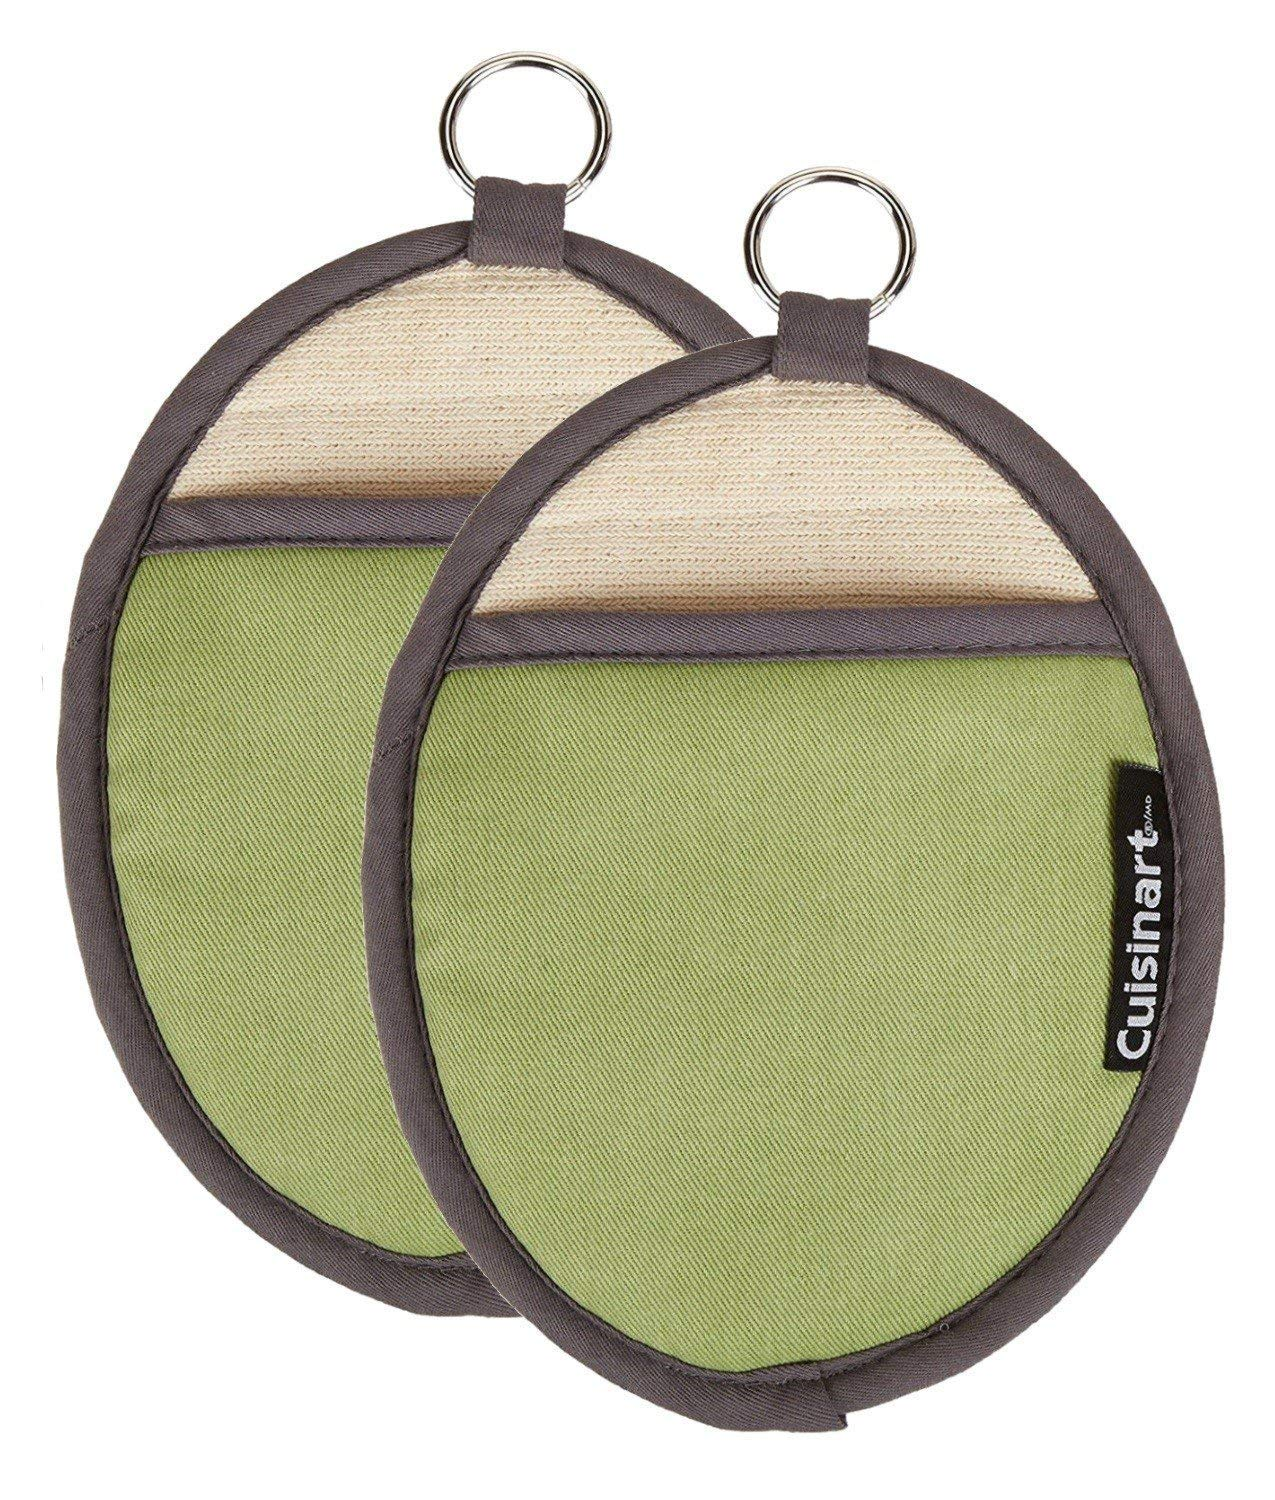 Cuisinart Silicone Oval Pot Holders and Oven Mitts - Heat Resistant, Handle Hot Oven / Cooking Items Safely - Soft Insulated Pockets, Non-Slip Grip and Convenient Hanging Loop - Green, Pack of 2 Mitts